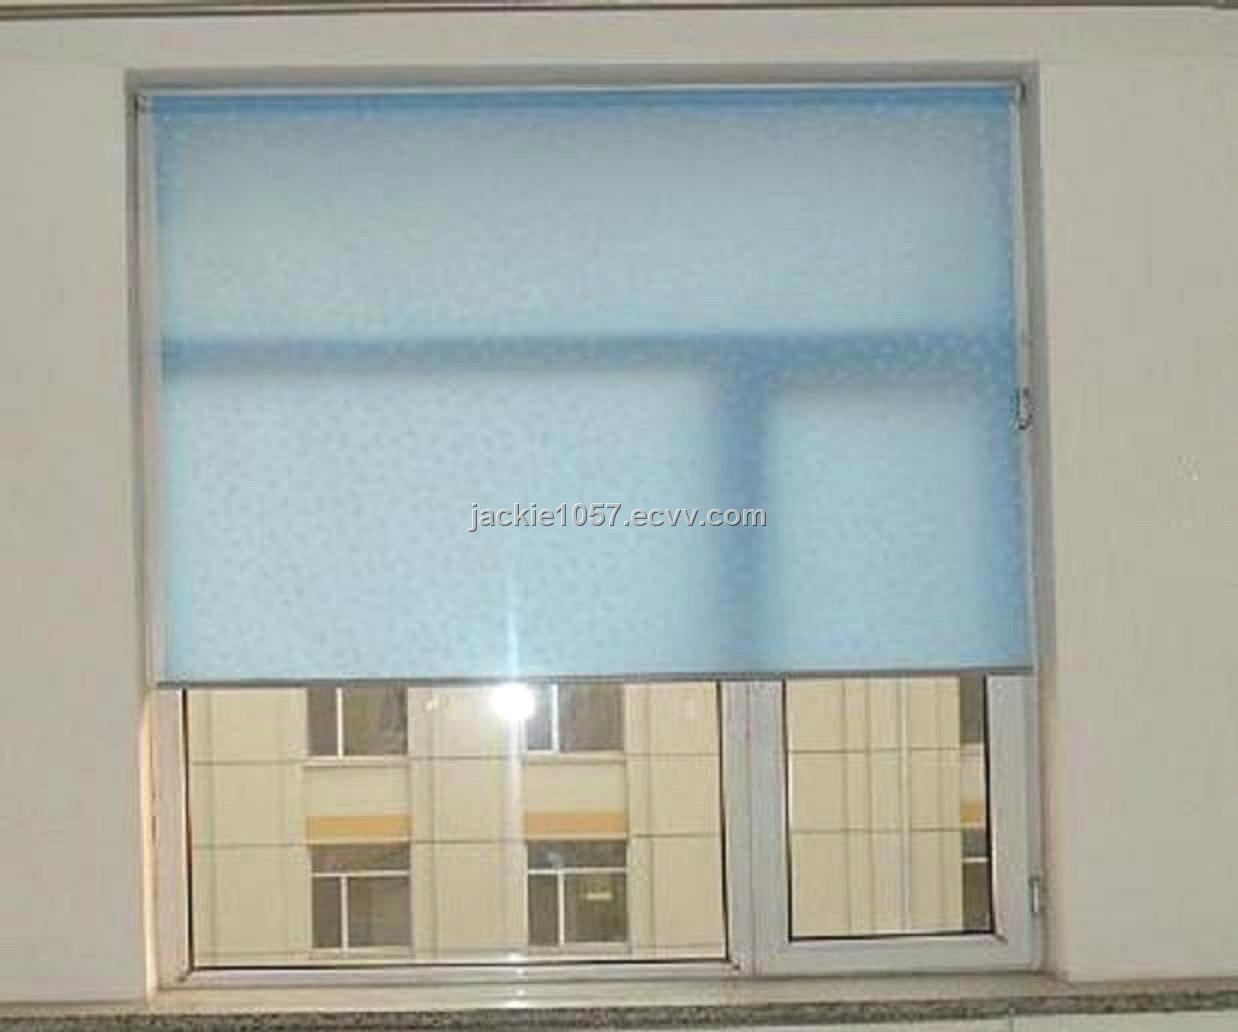 Roller Blinds from manufacturers, factories, wholesalers